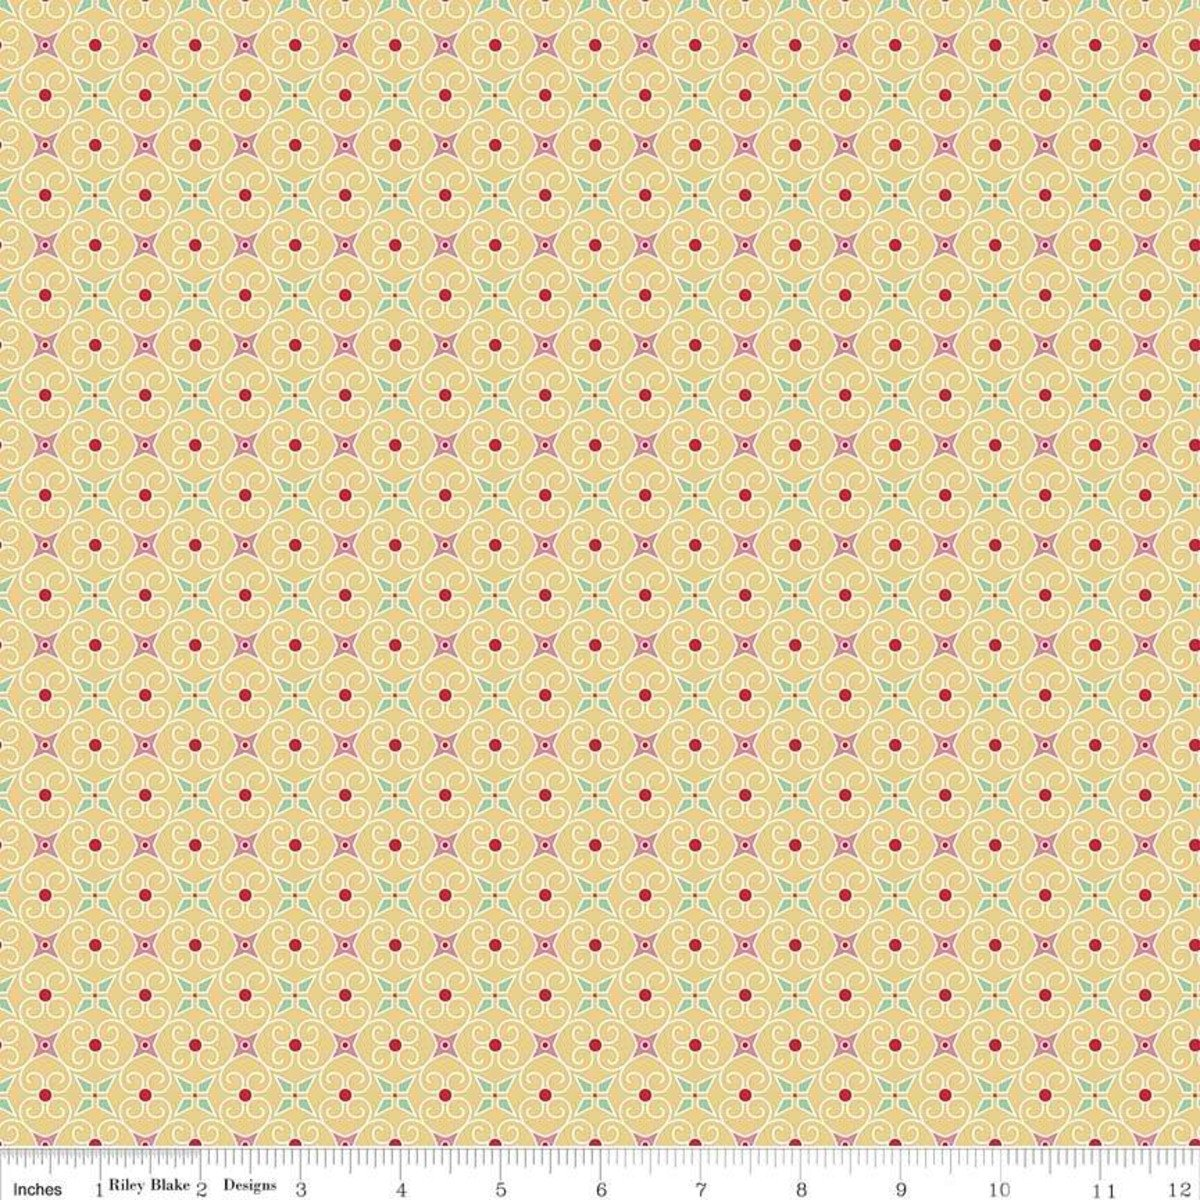 Cozy Christmas Wrapping Paper - yellow